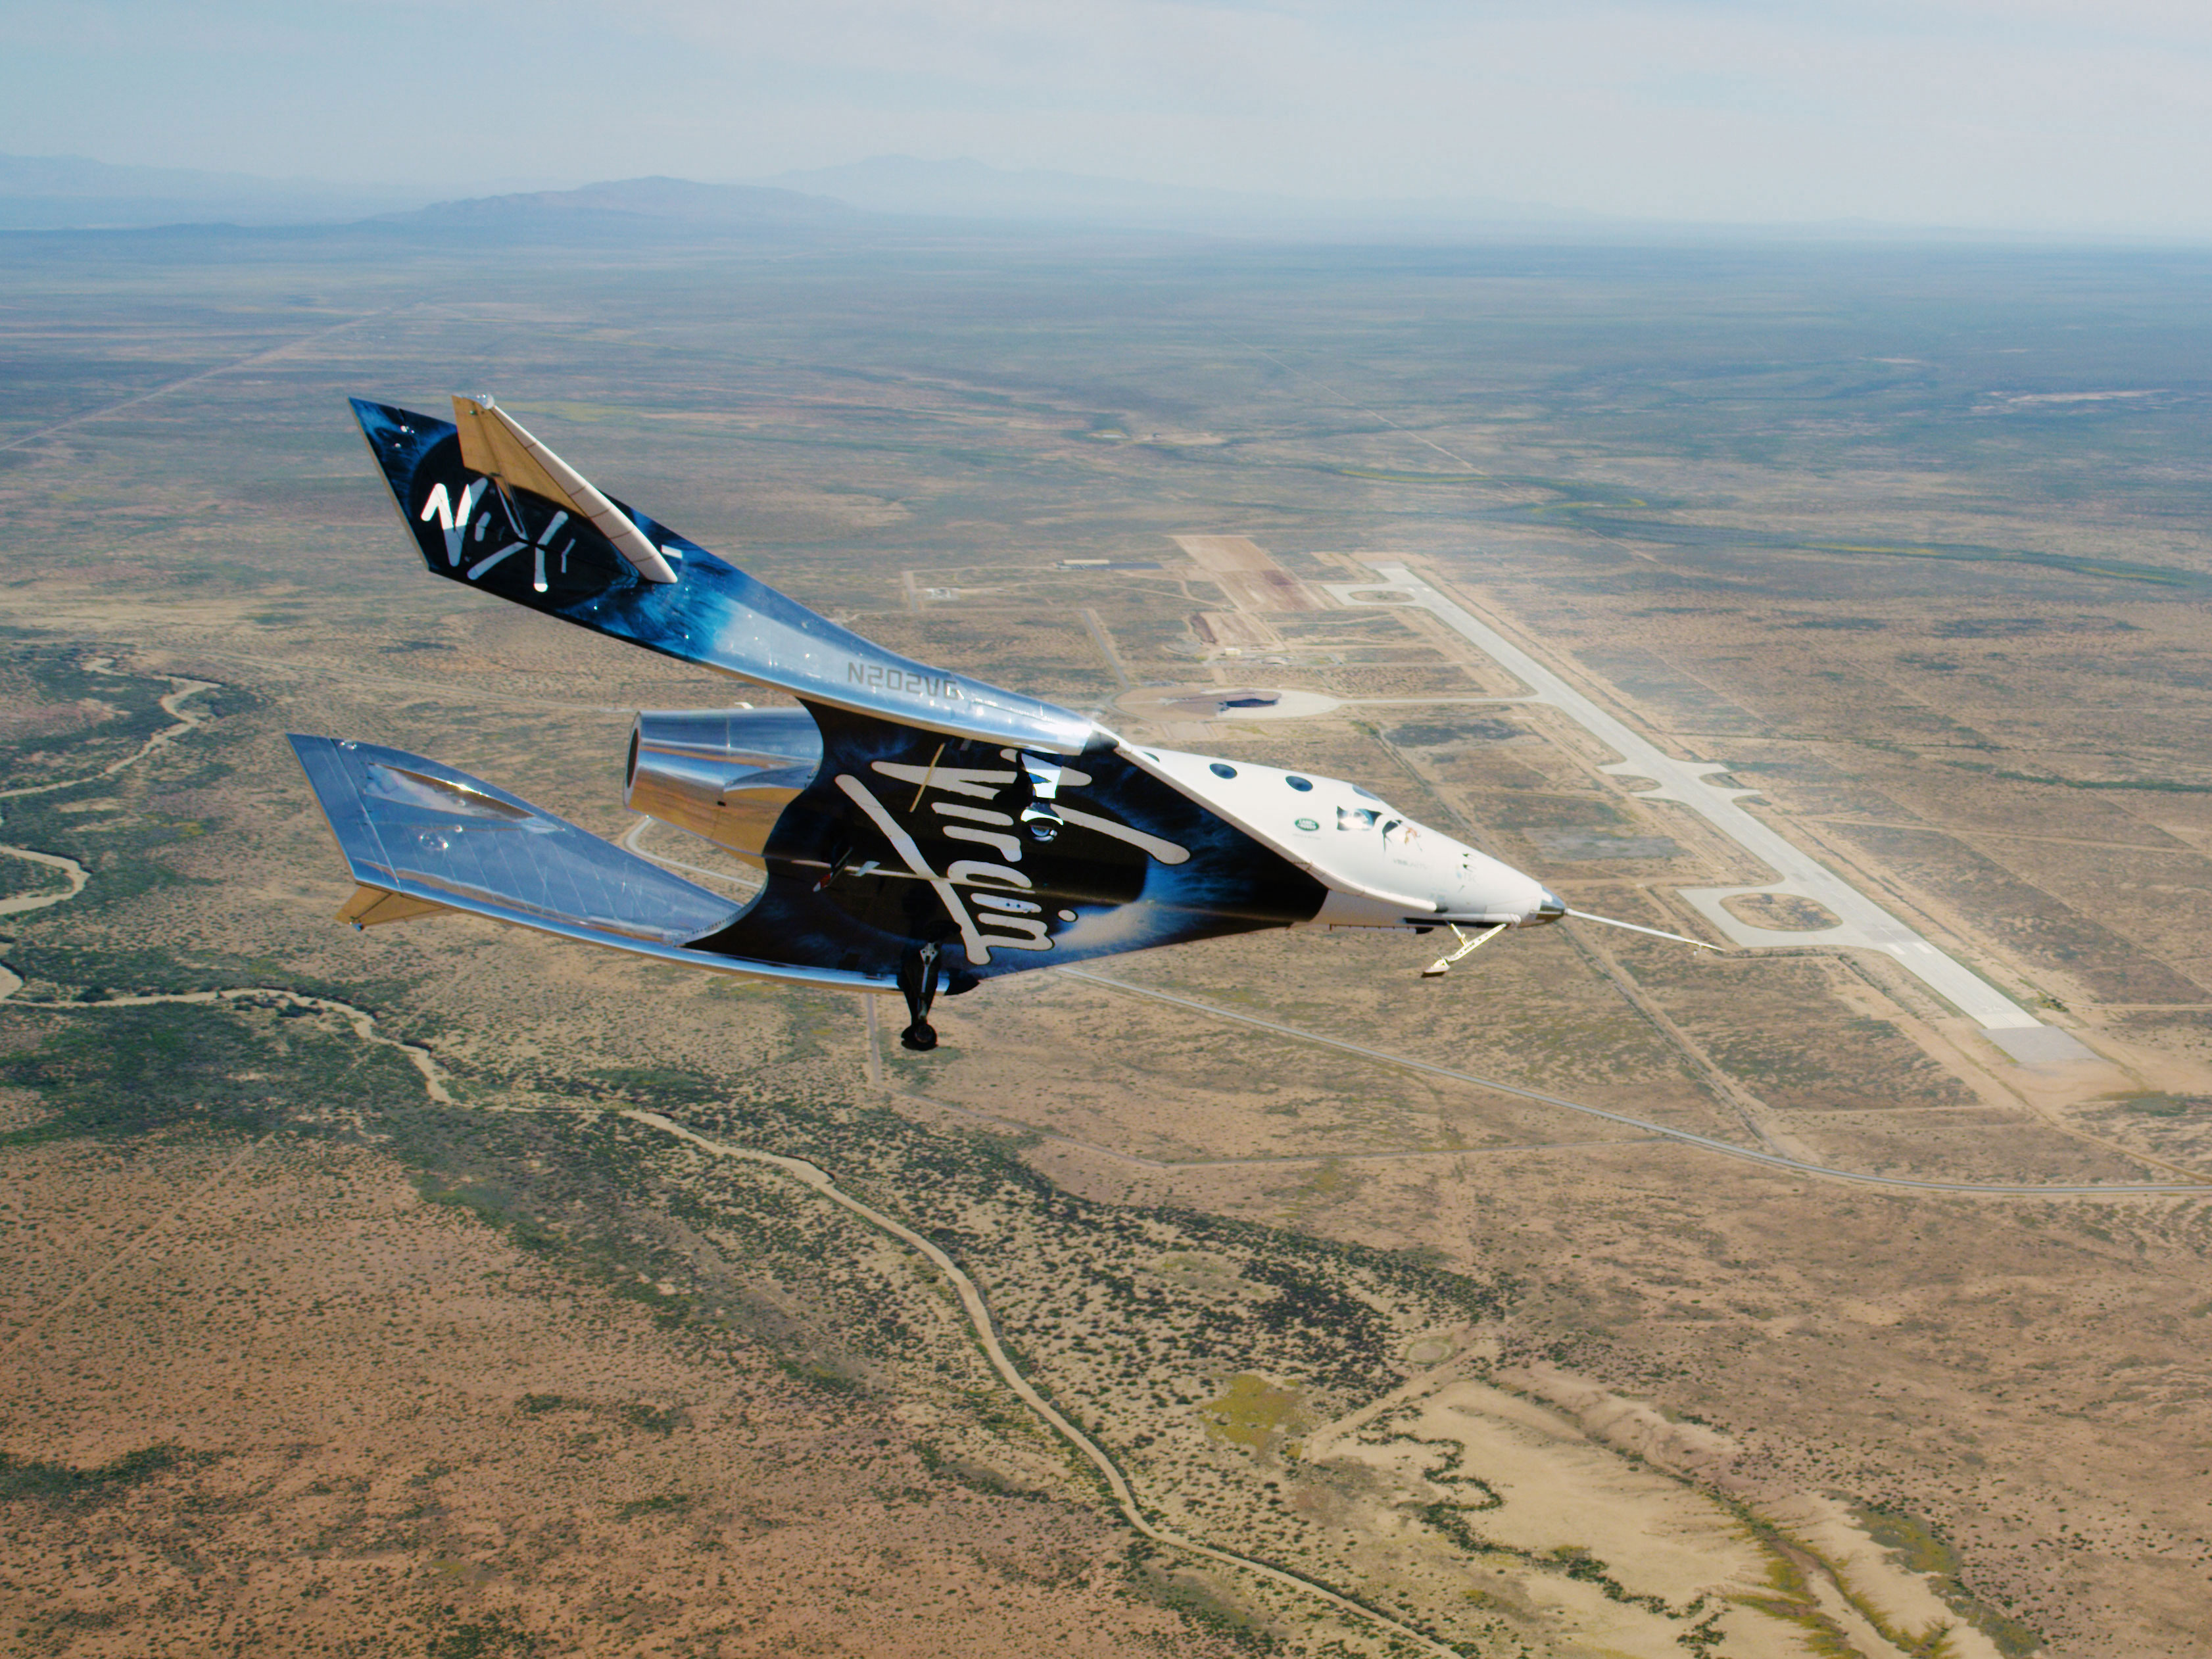 SpaceShipTwo VSS Unity flies in New Mexico airspace in October 2020.